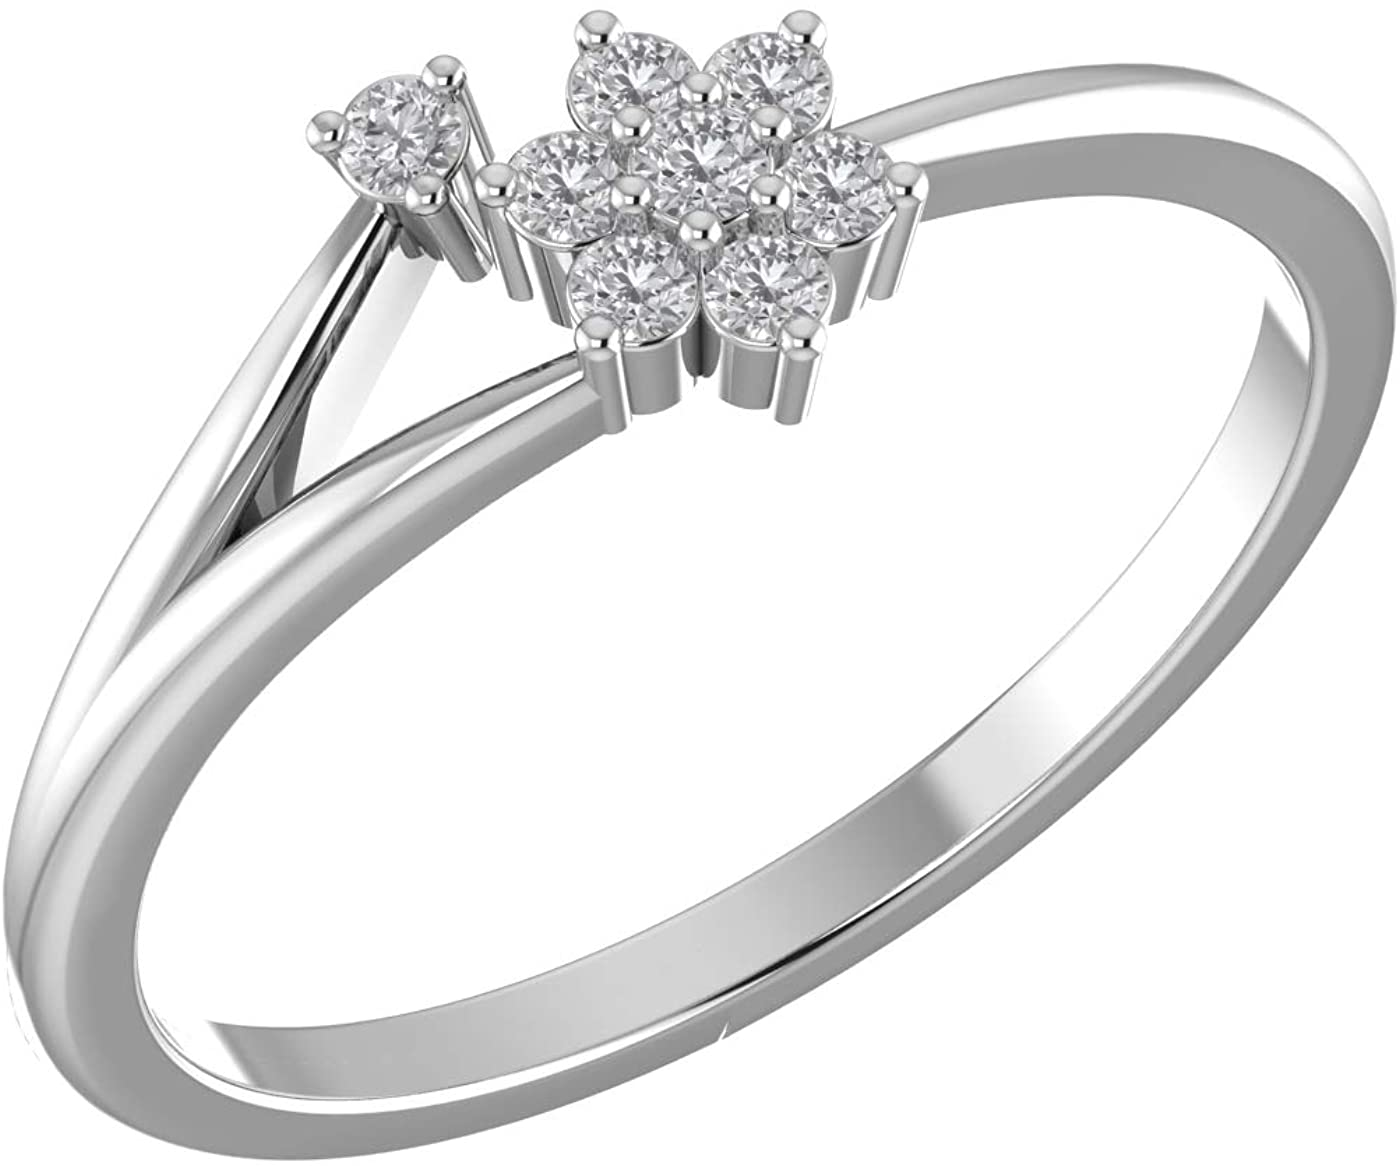 Amayra Diamond Ring 0.12 CTW-8 Natural Round Stones Set in 925 Sterling Silver- Brilliant Cut- Perfect for Bridal Promise Ring,Anniversary,Daily wear or Parties (Color-GH Clarity-VS-SI)